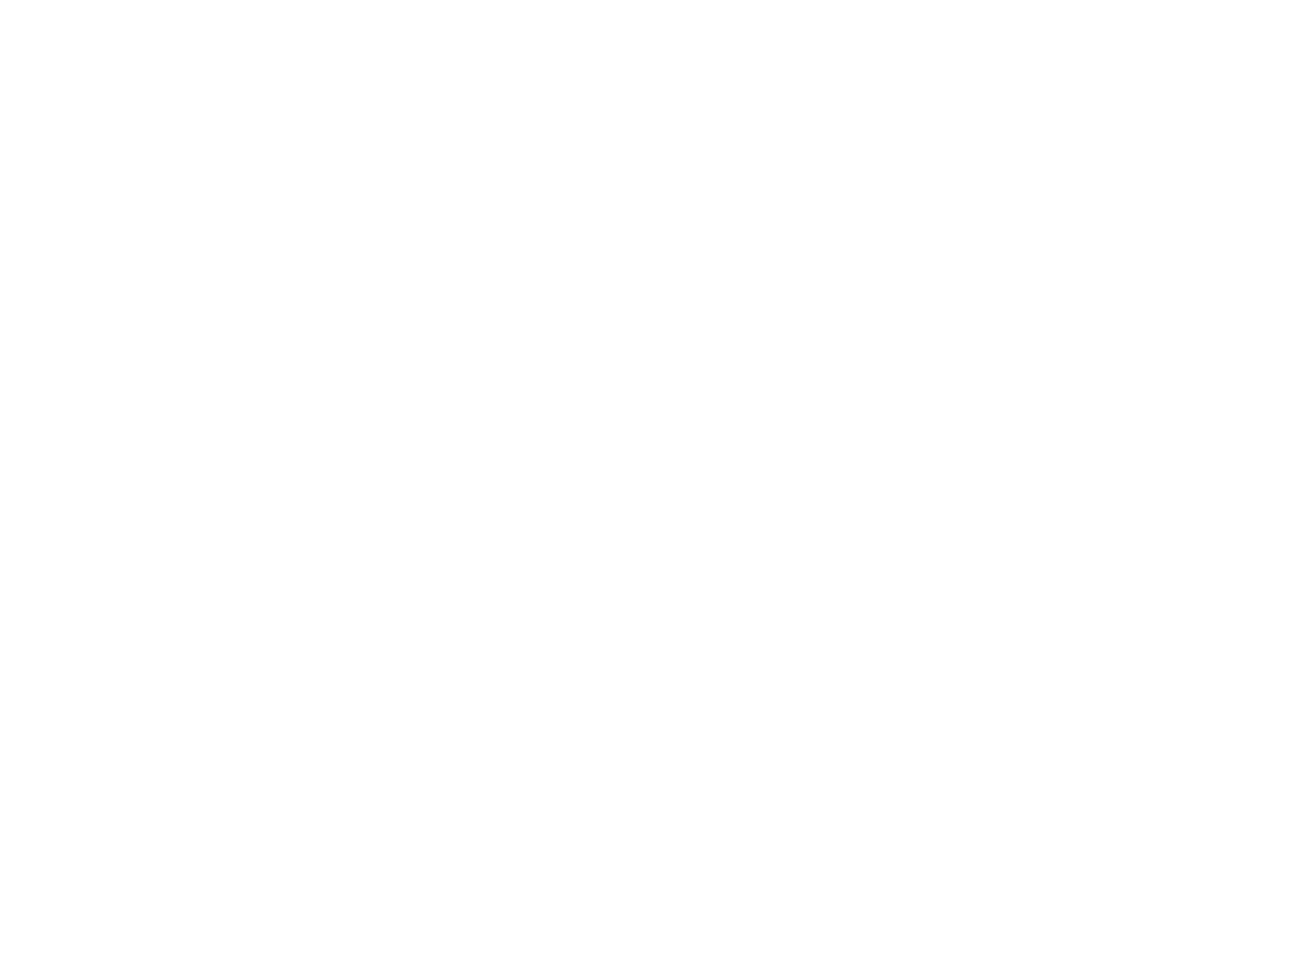 Christine Ballisty Photography